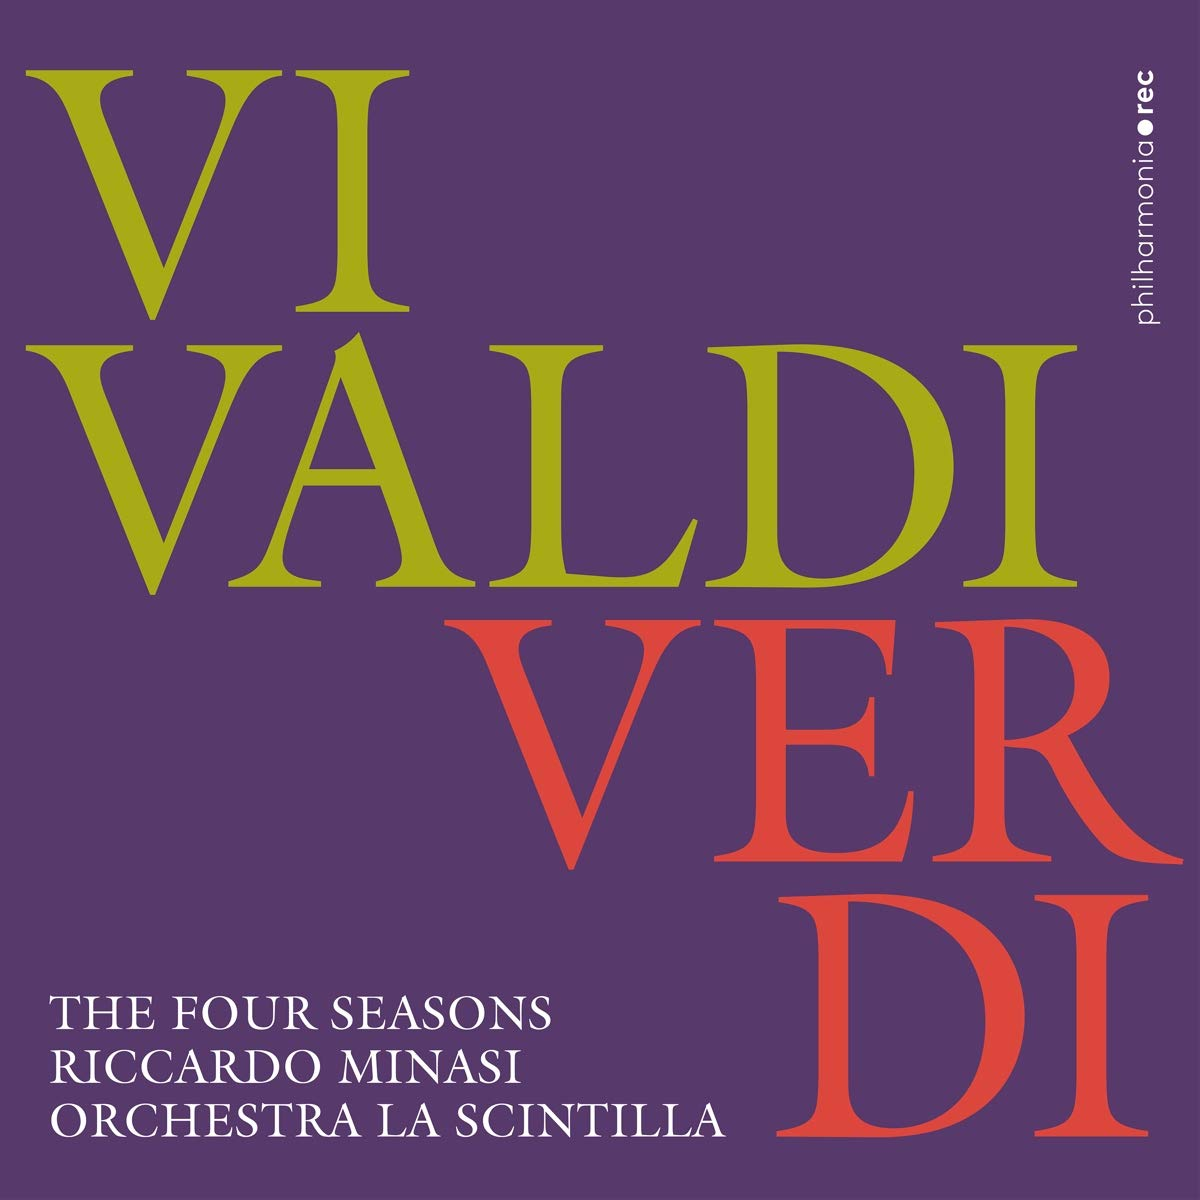 Antonio Vivaldi / Giuseppe Verdi / The Four Seasons // Riccardo Minasi